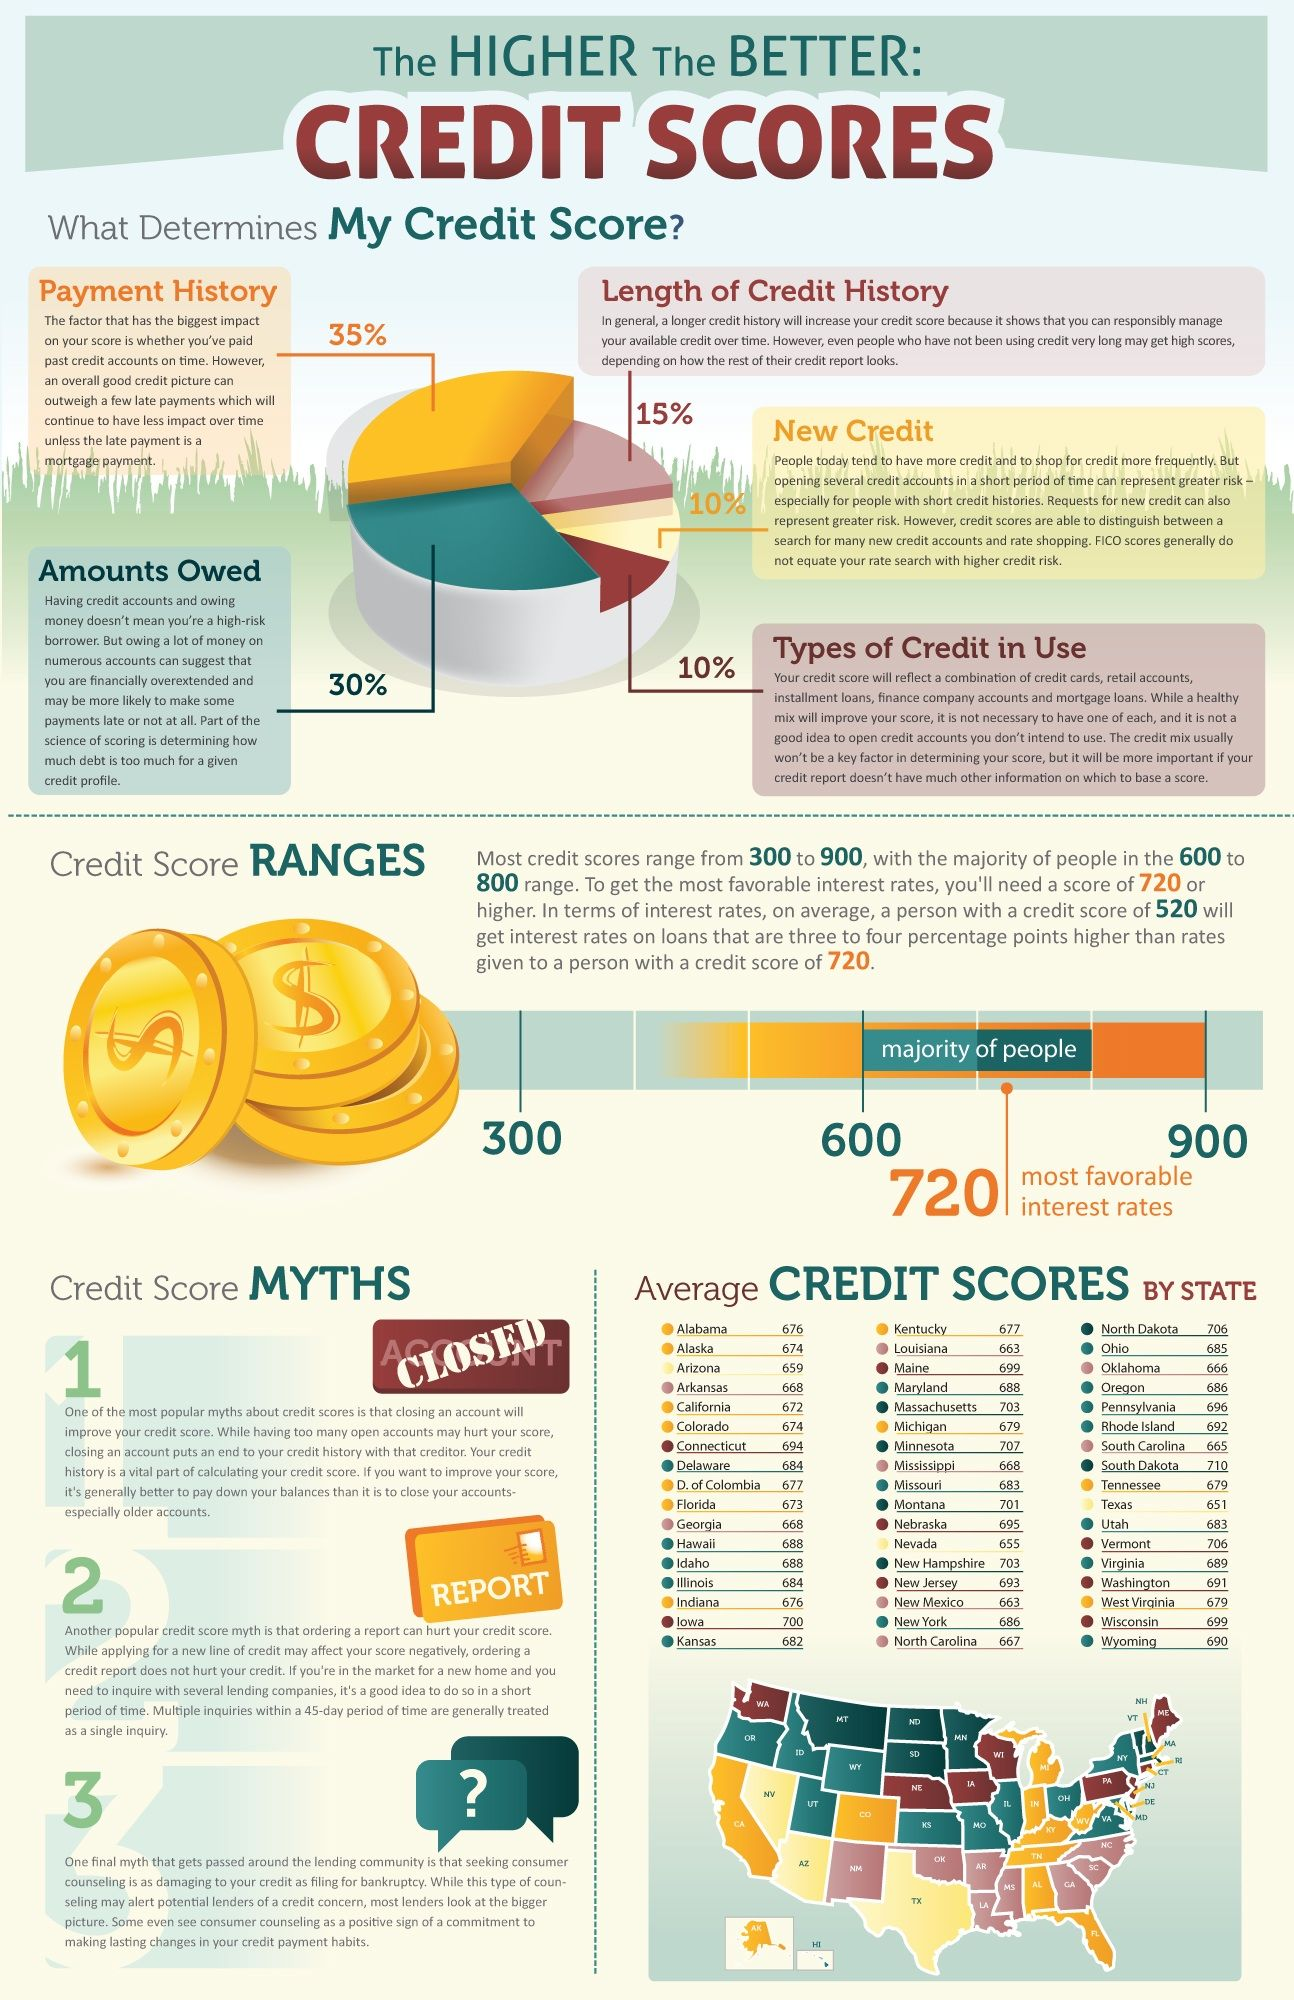 683 Credit Score >> Your Credit Score Often Referred To As Your Fico Score Is